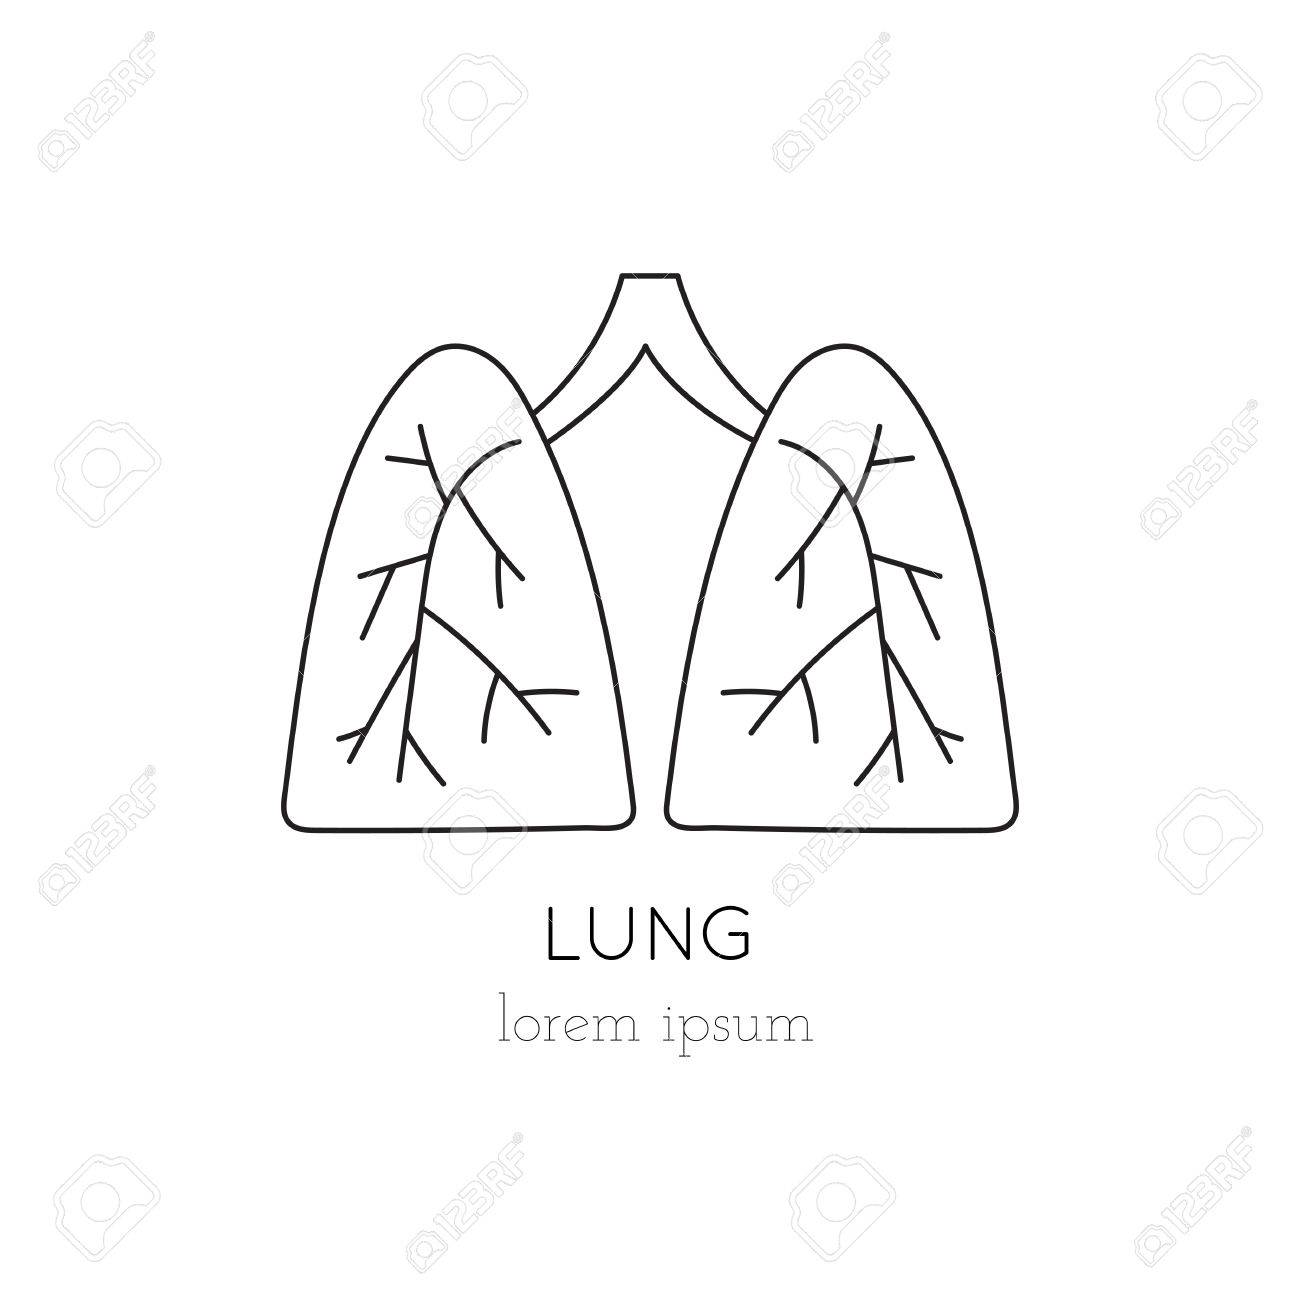 lungs thin line icon, logo template illustration. part of organ, Powerpoint templates